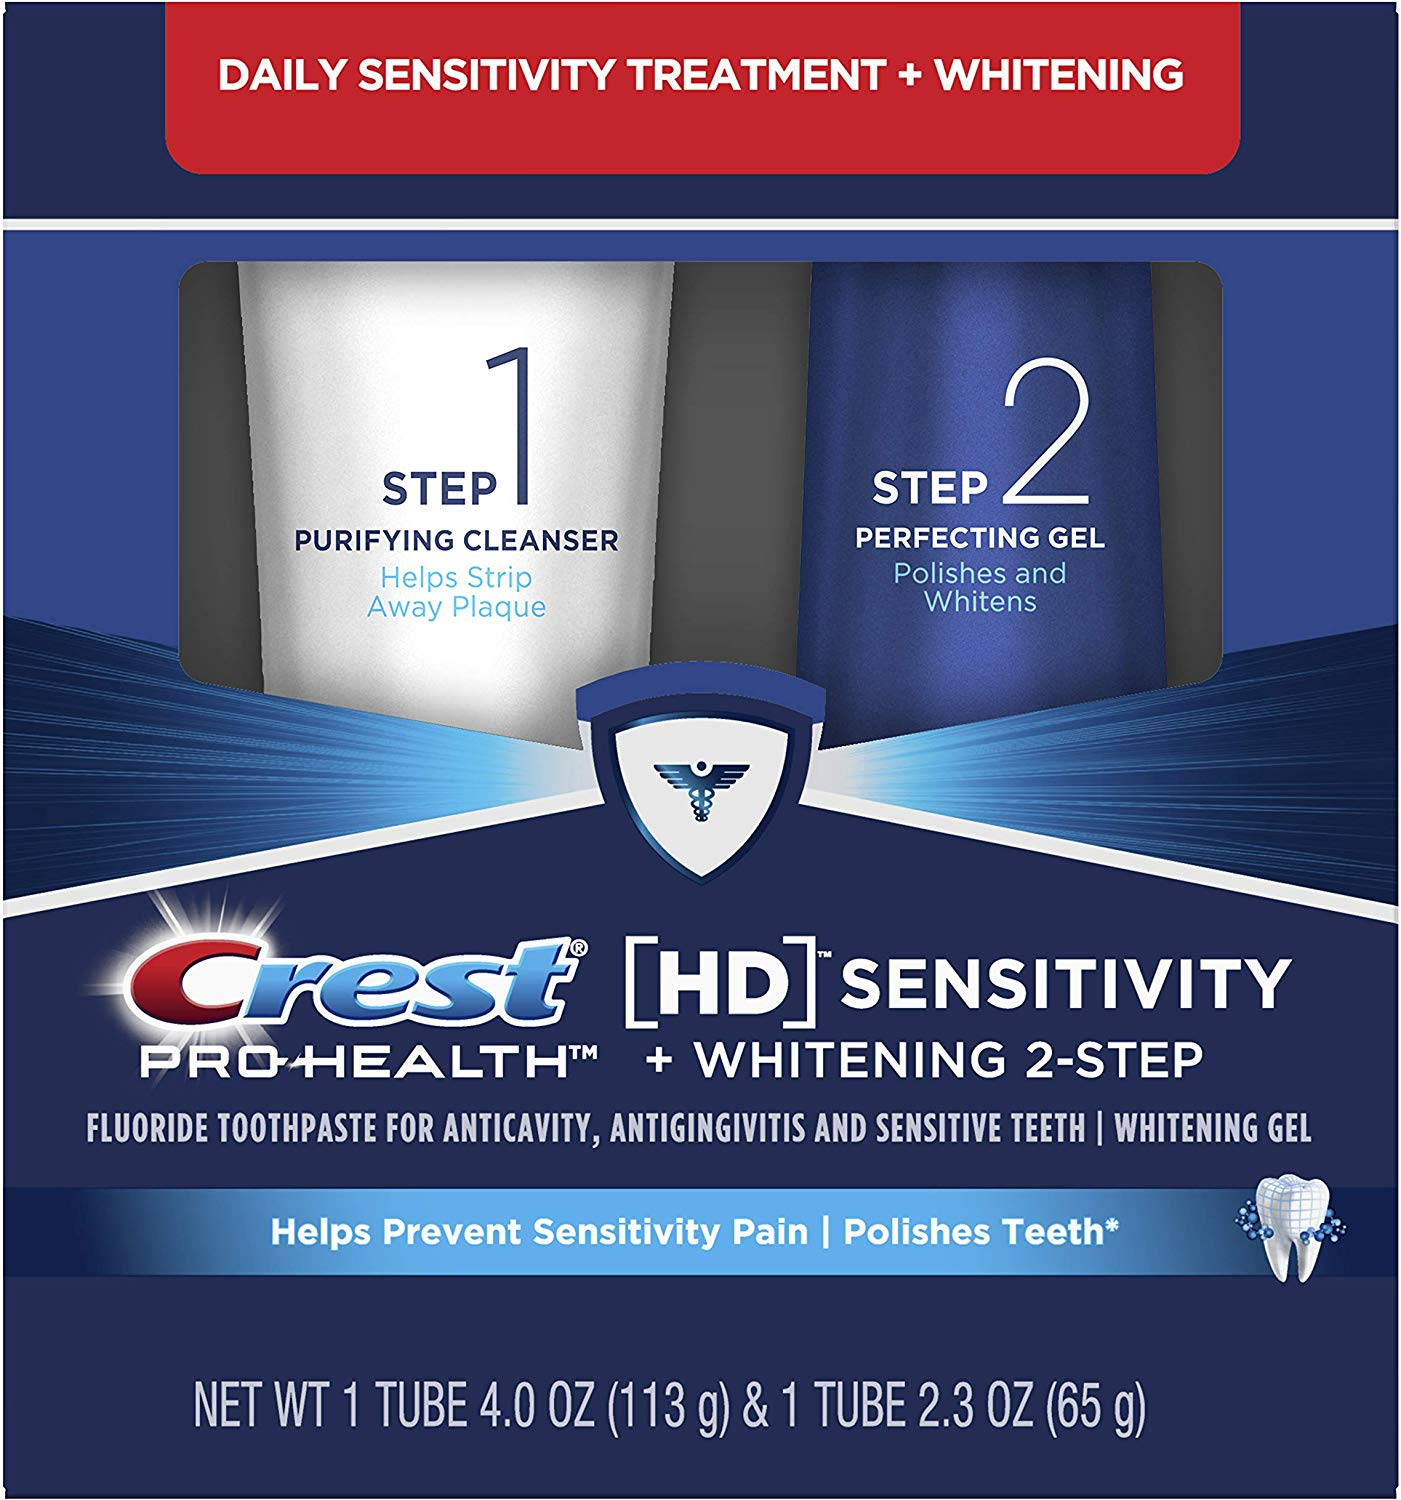 Crest Pro-Health HD Toothpaste, Teeth Whitening and Healthier Mouth via Daily Two-Step System (Basic)